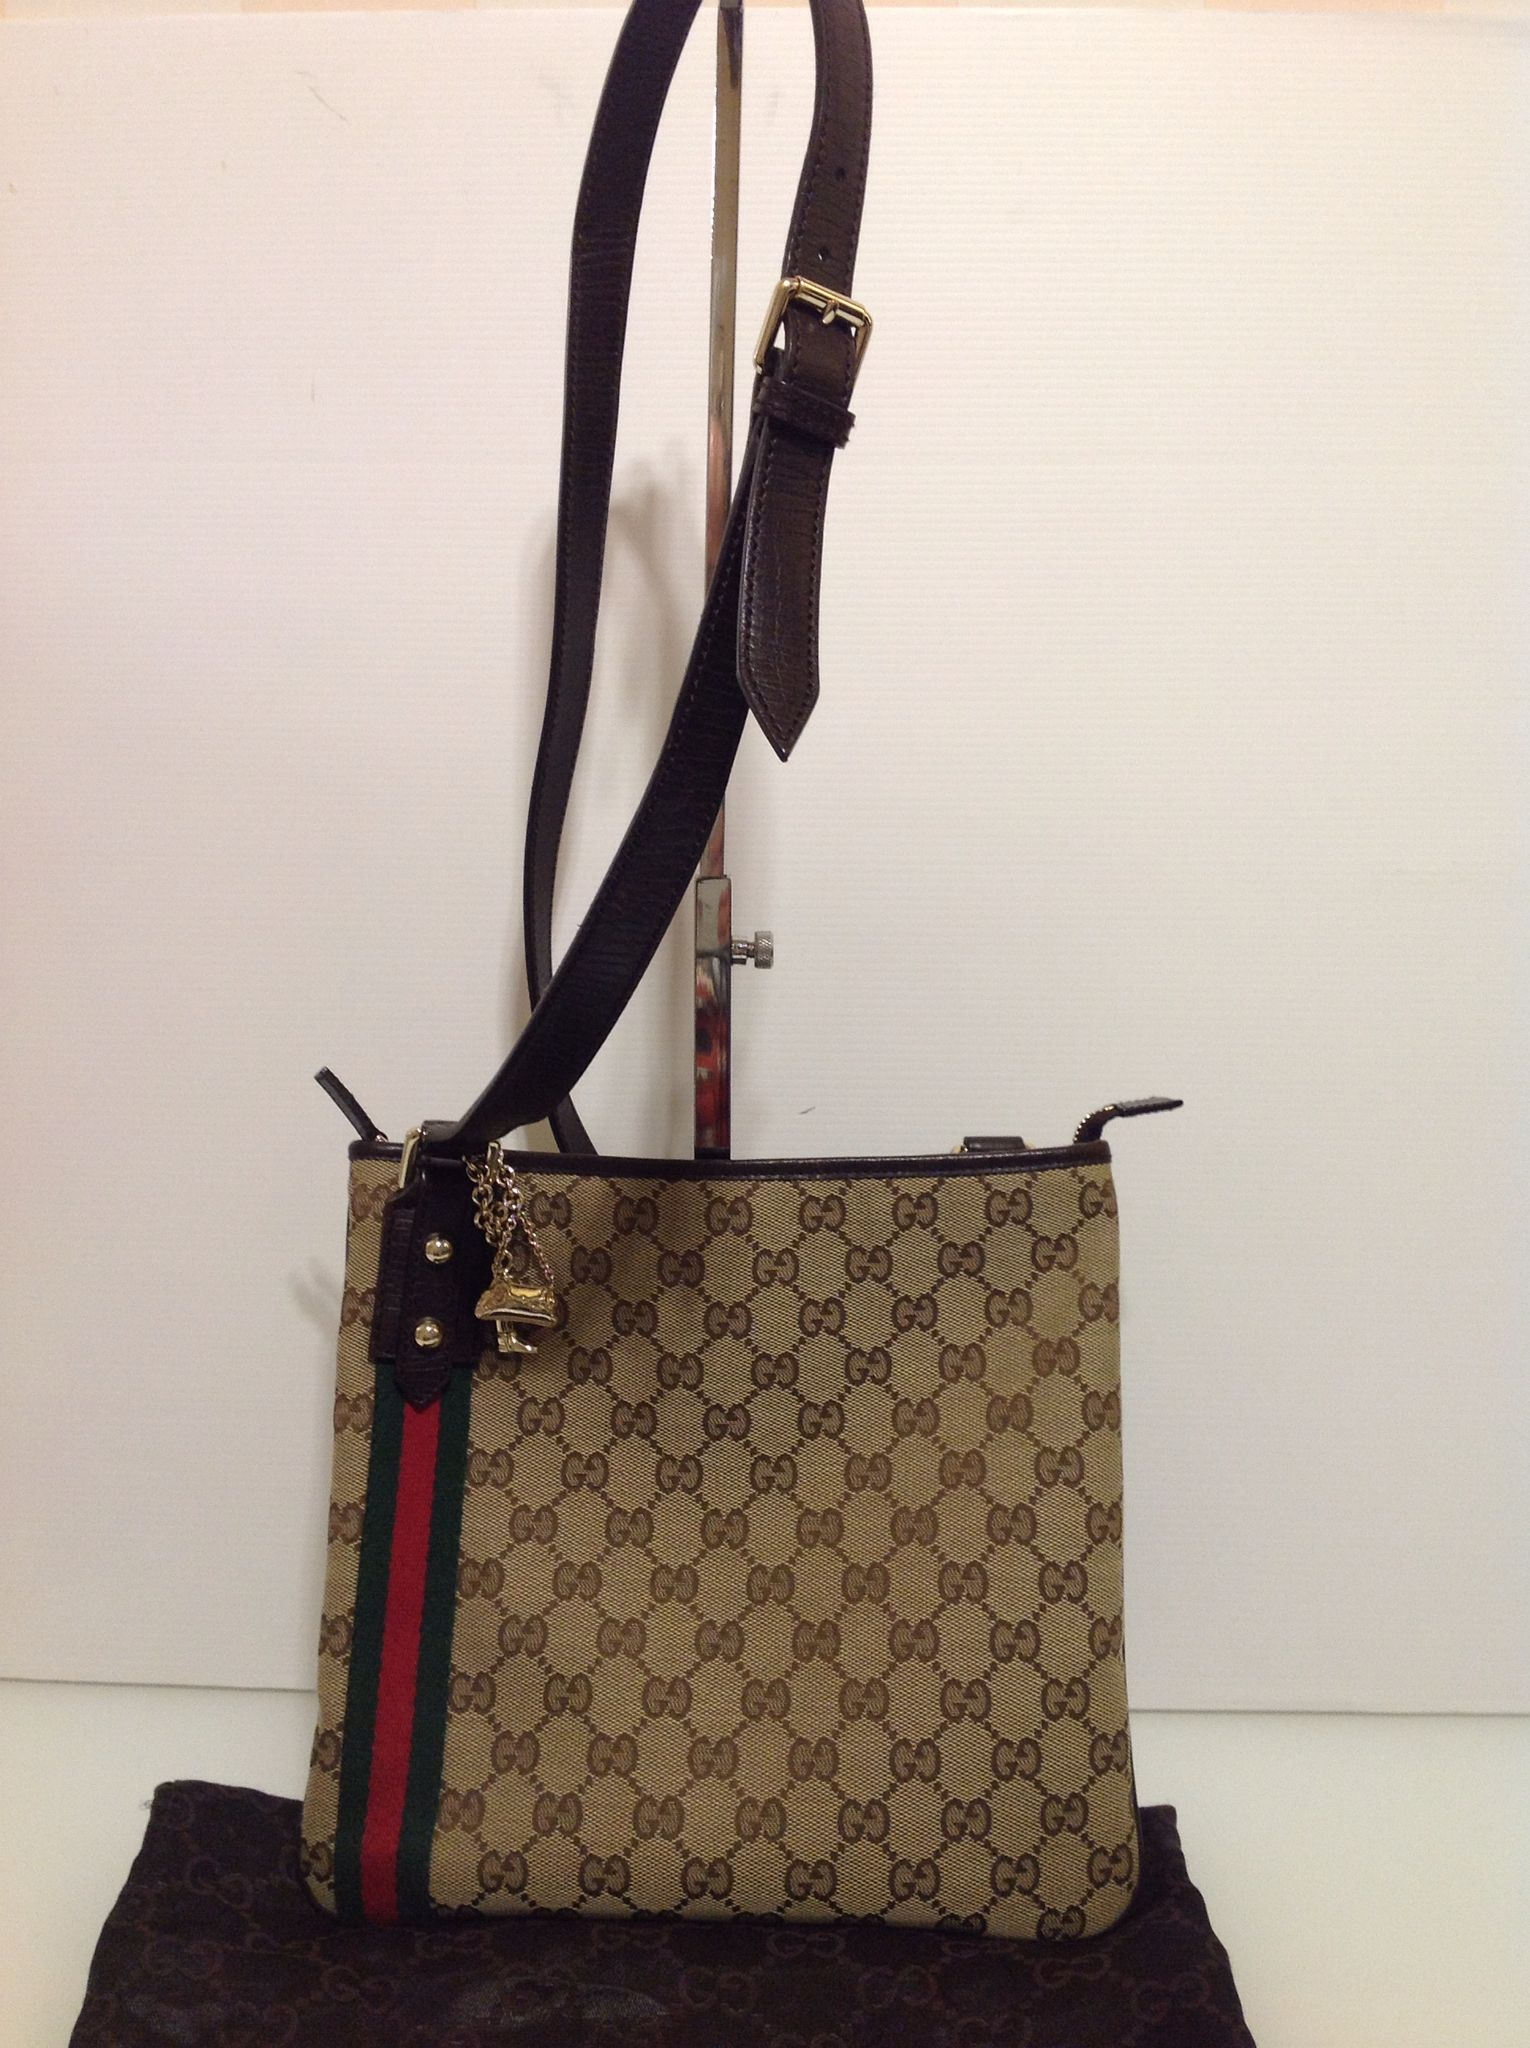 1ace59392afc4f Authentic Gucci Cross Body Bag in GG Mono with Charm and Dust-bag 295 This  is a guaranteed authentic Gucci bag. It can be viewed and tried at our  designer ...